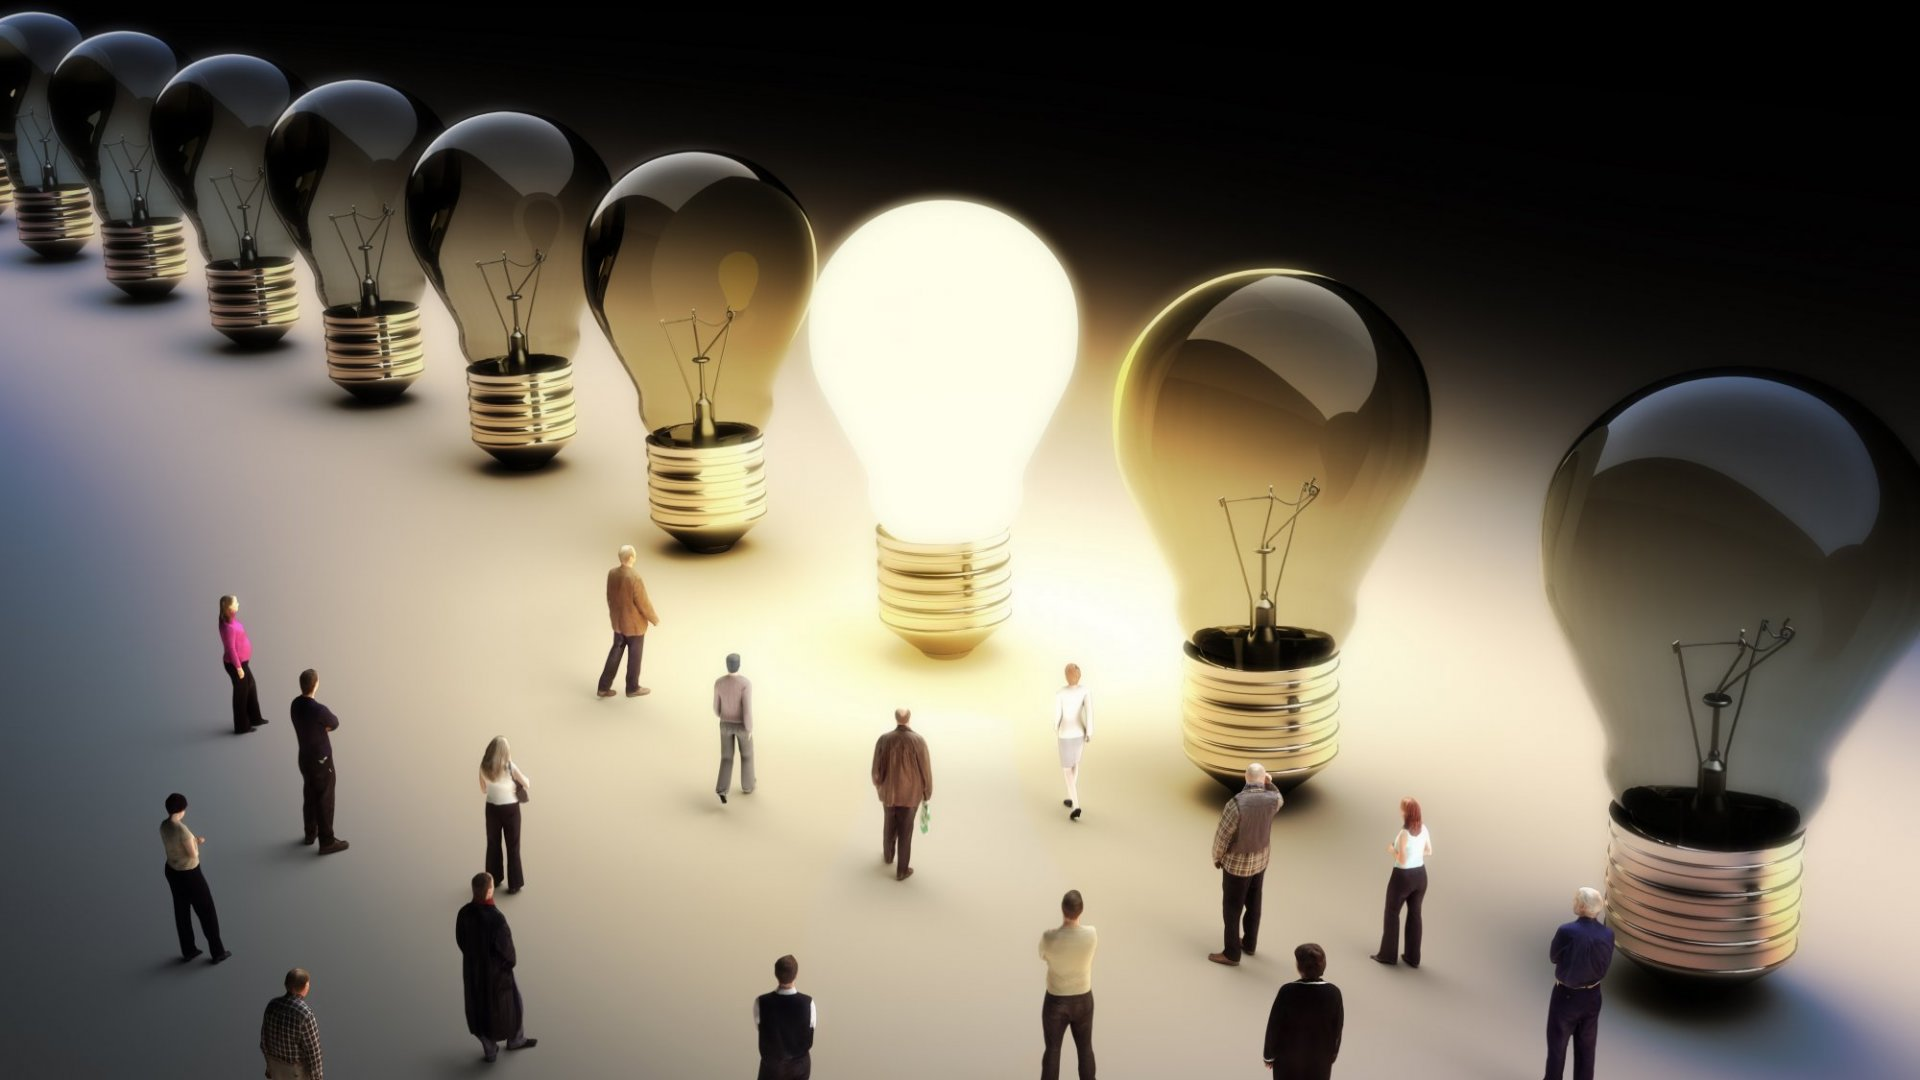 How to Make Sure Your Brilliant Startup Idea Doesn't Get Stolen